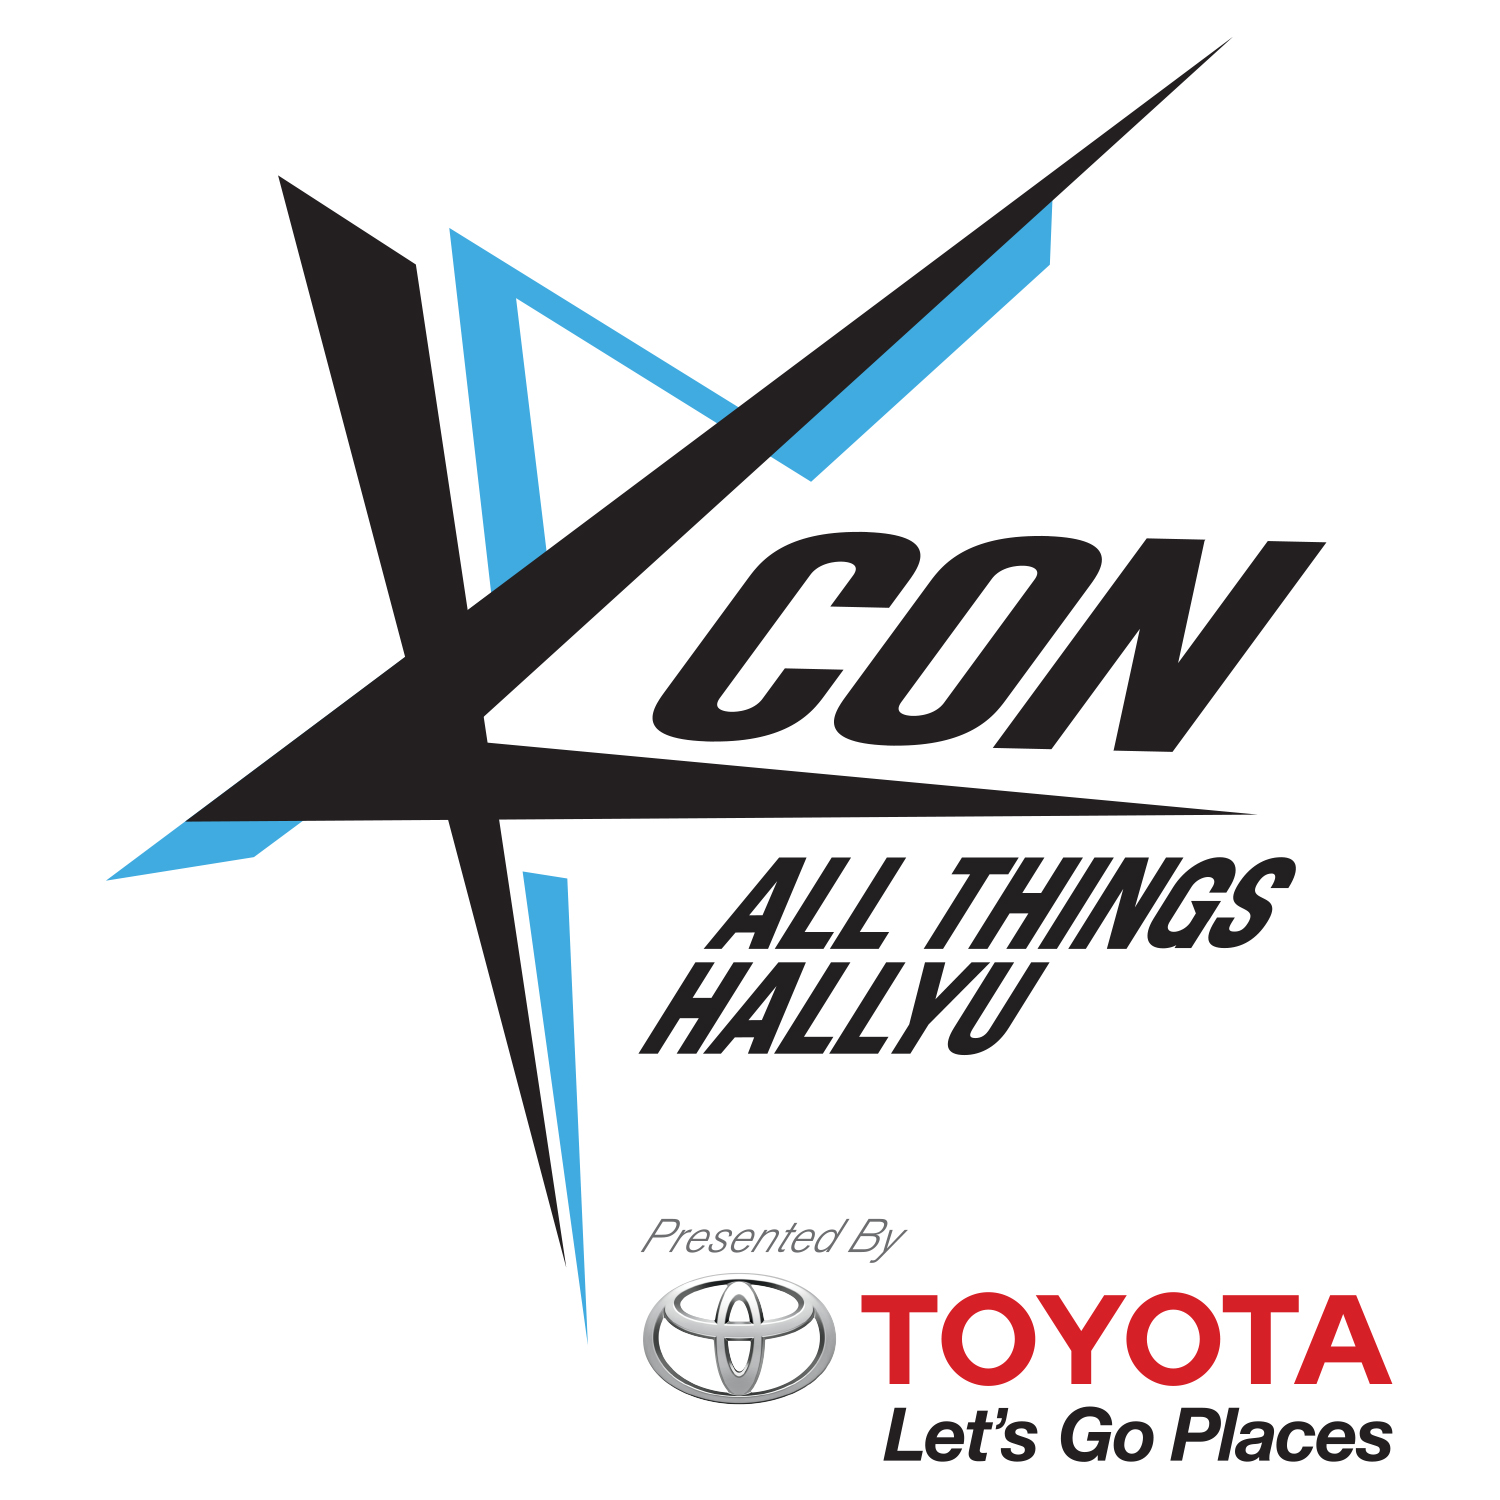 Davichi and Turbo announced as special guests for KCON LA 2016